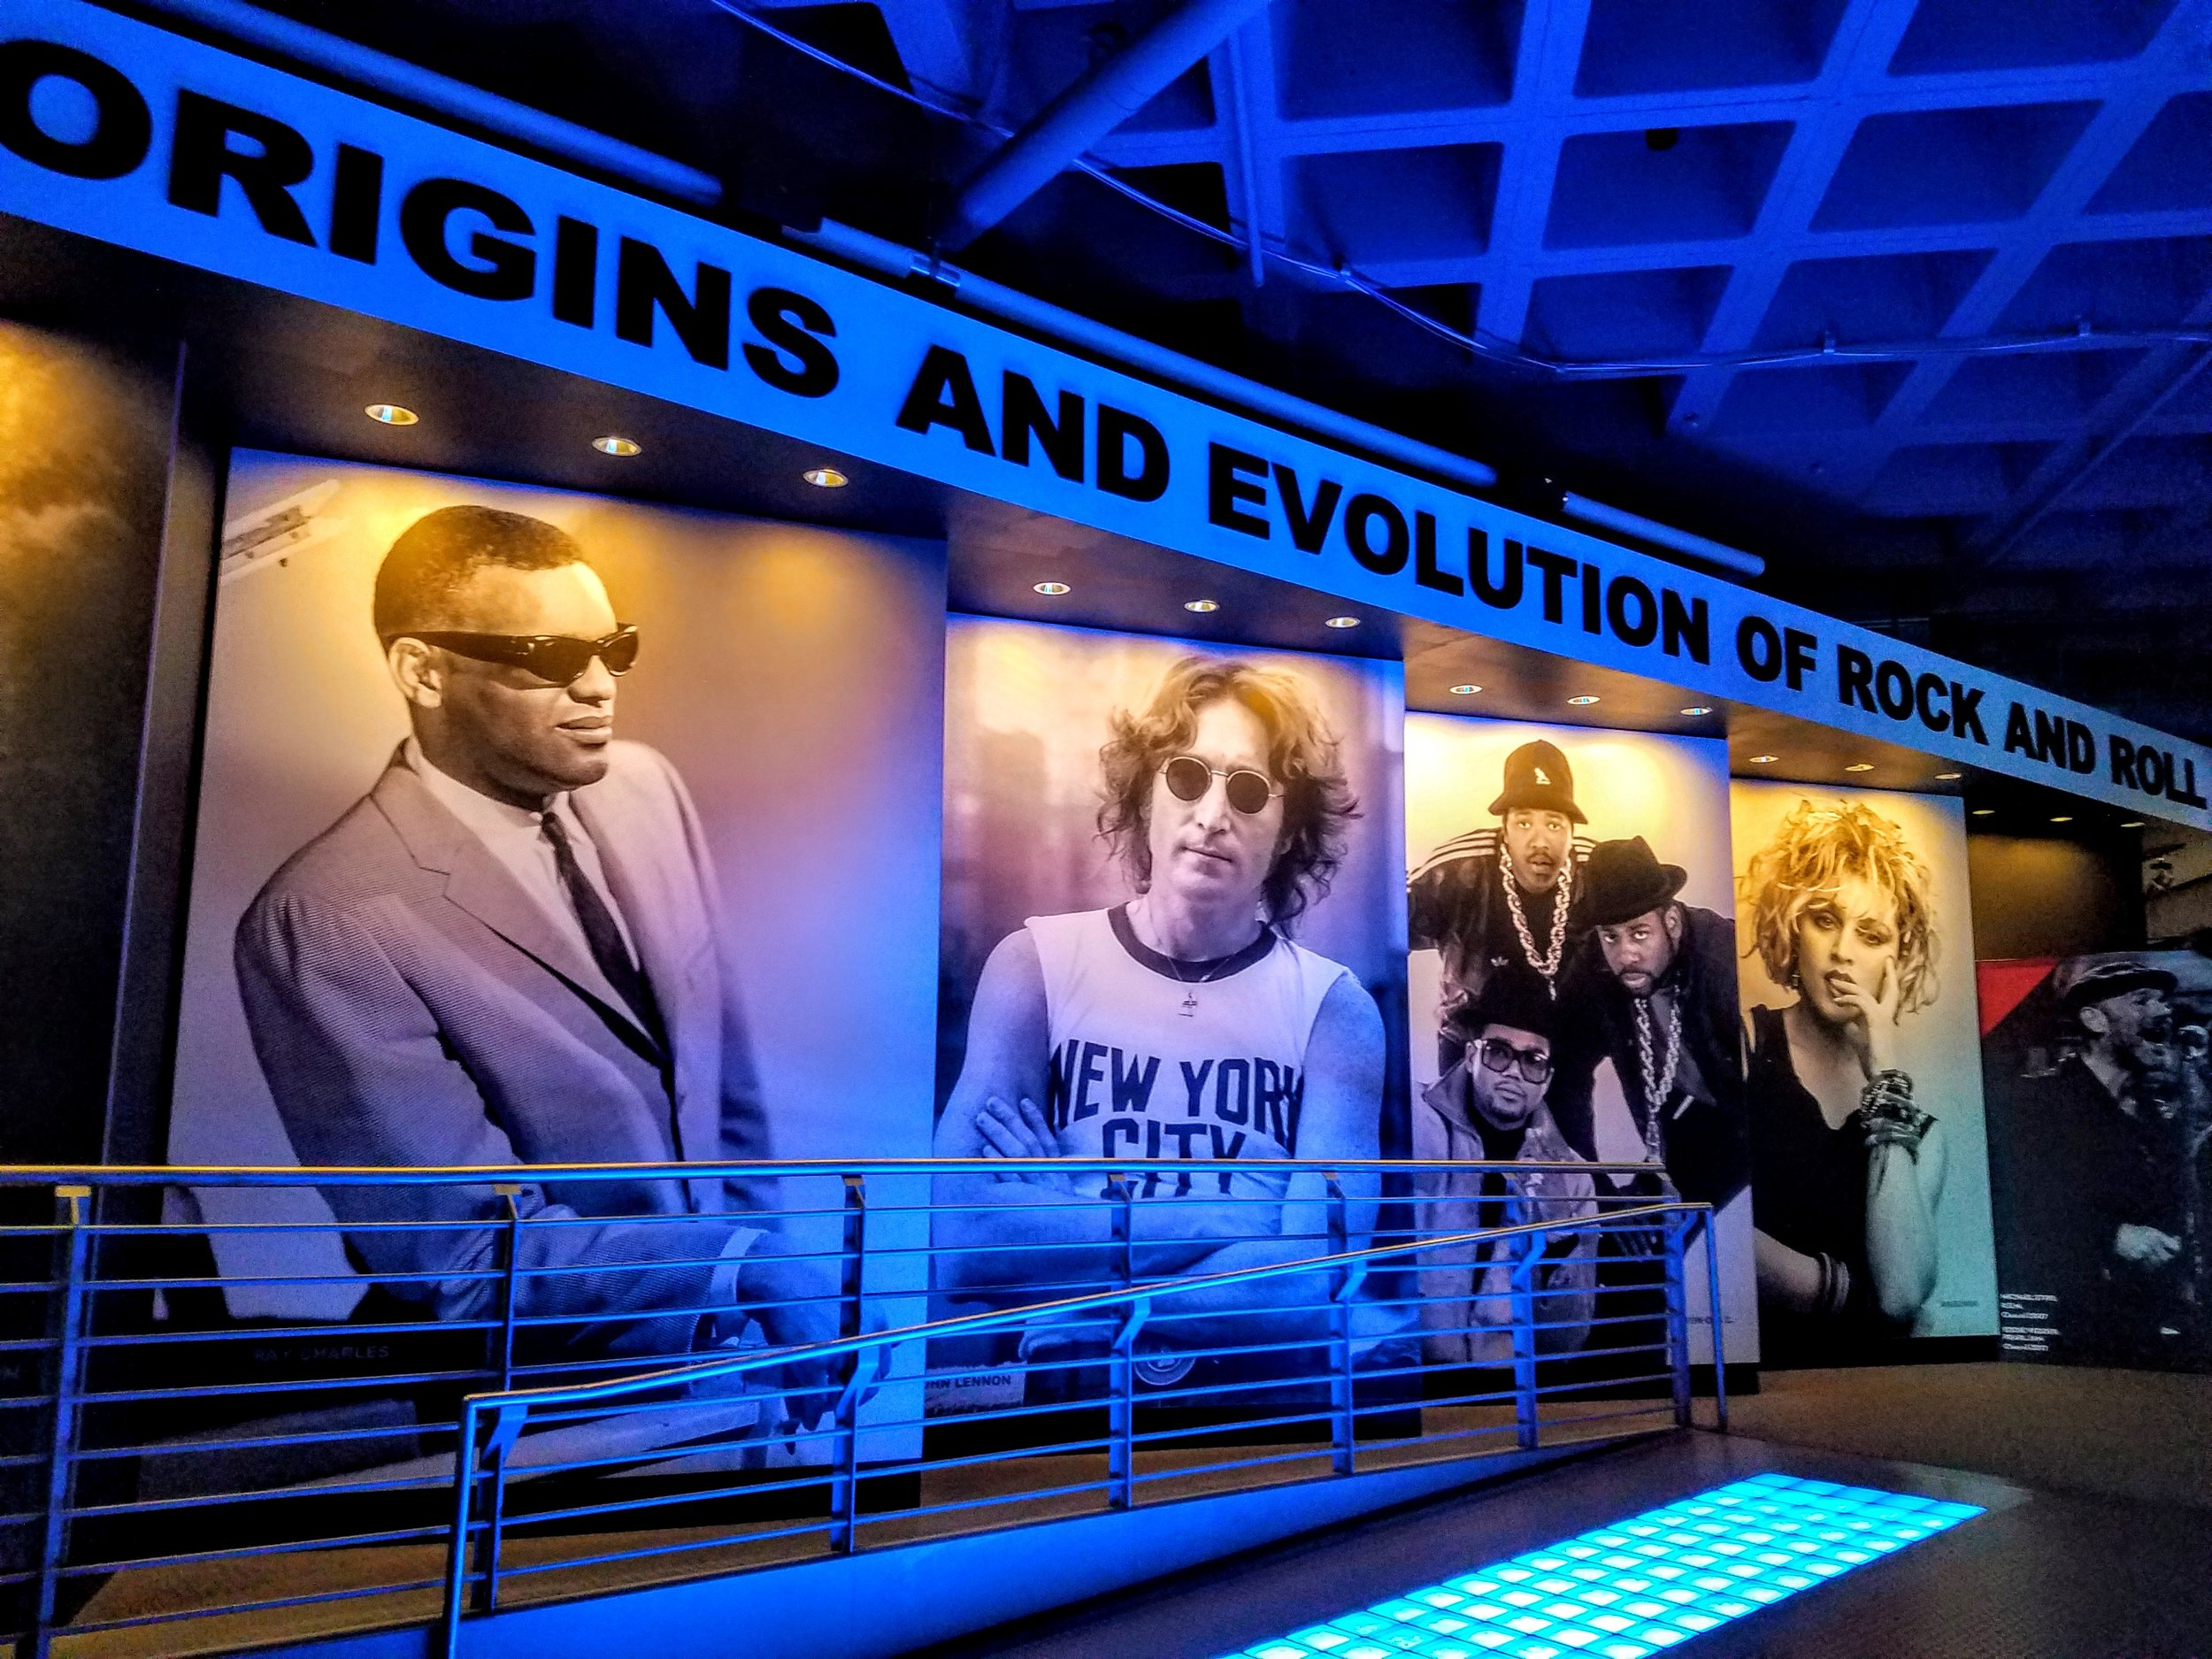 We spent about four hours in the RRHoF…amazing amount of information and memorabilia